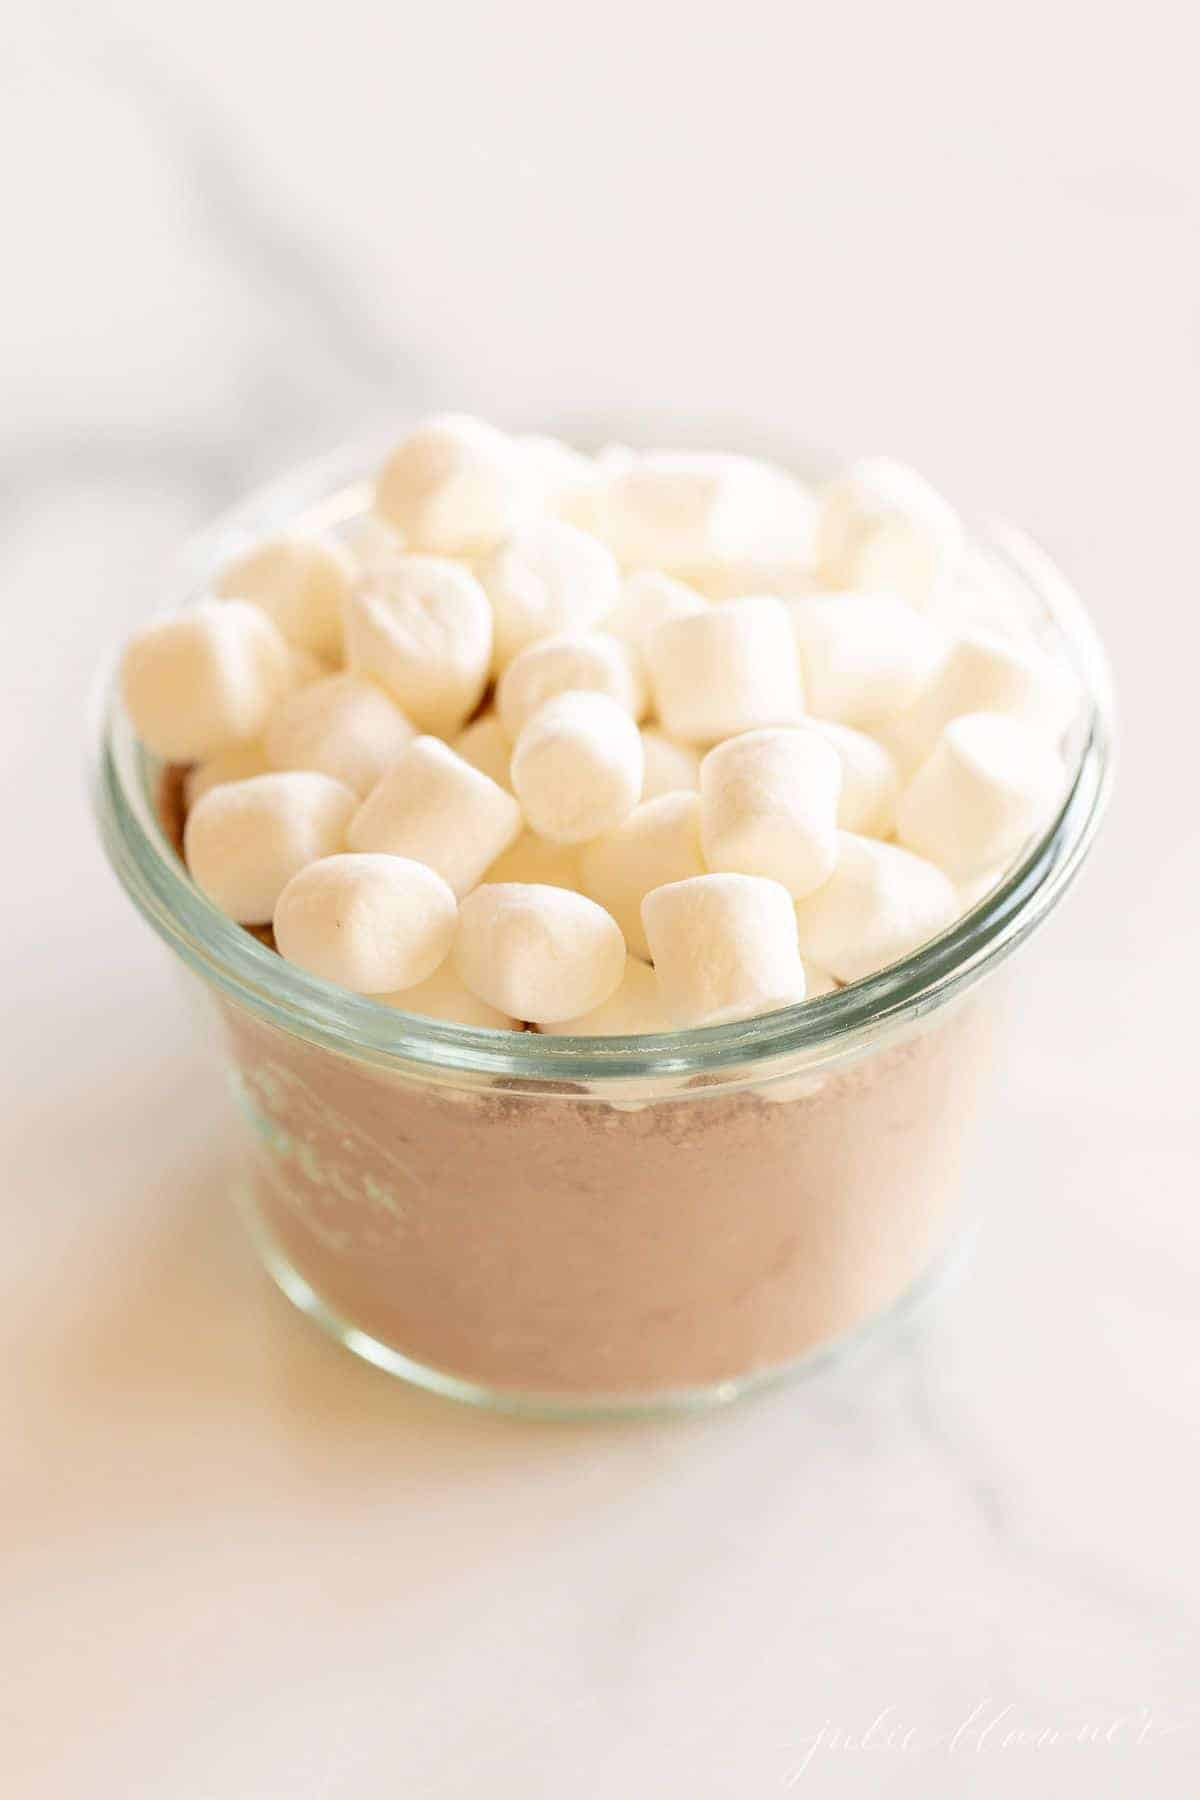 A small glass jar full of homemade hot chocolate mix topped with small marshmallows.